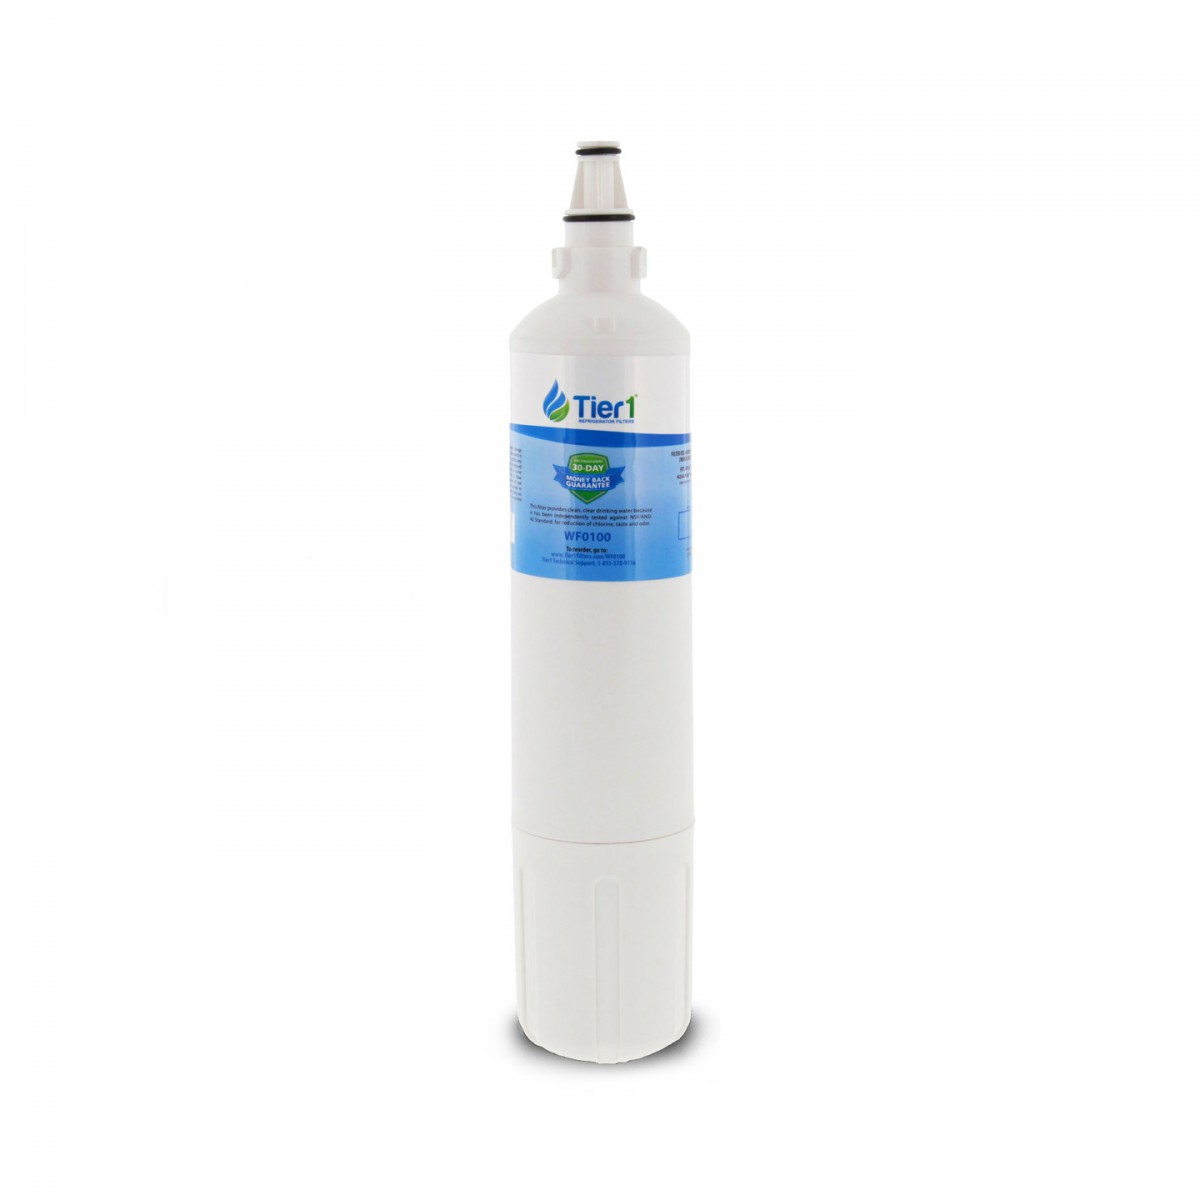 Tier1 C-Complete Comparable Under Sink Water Filter Cartridge